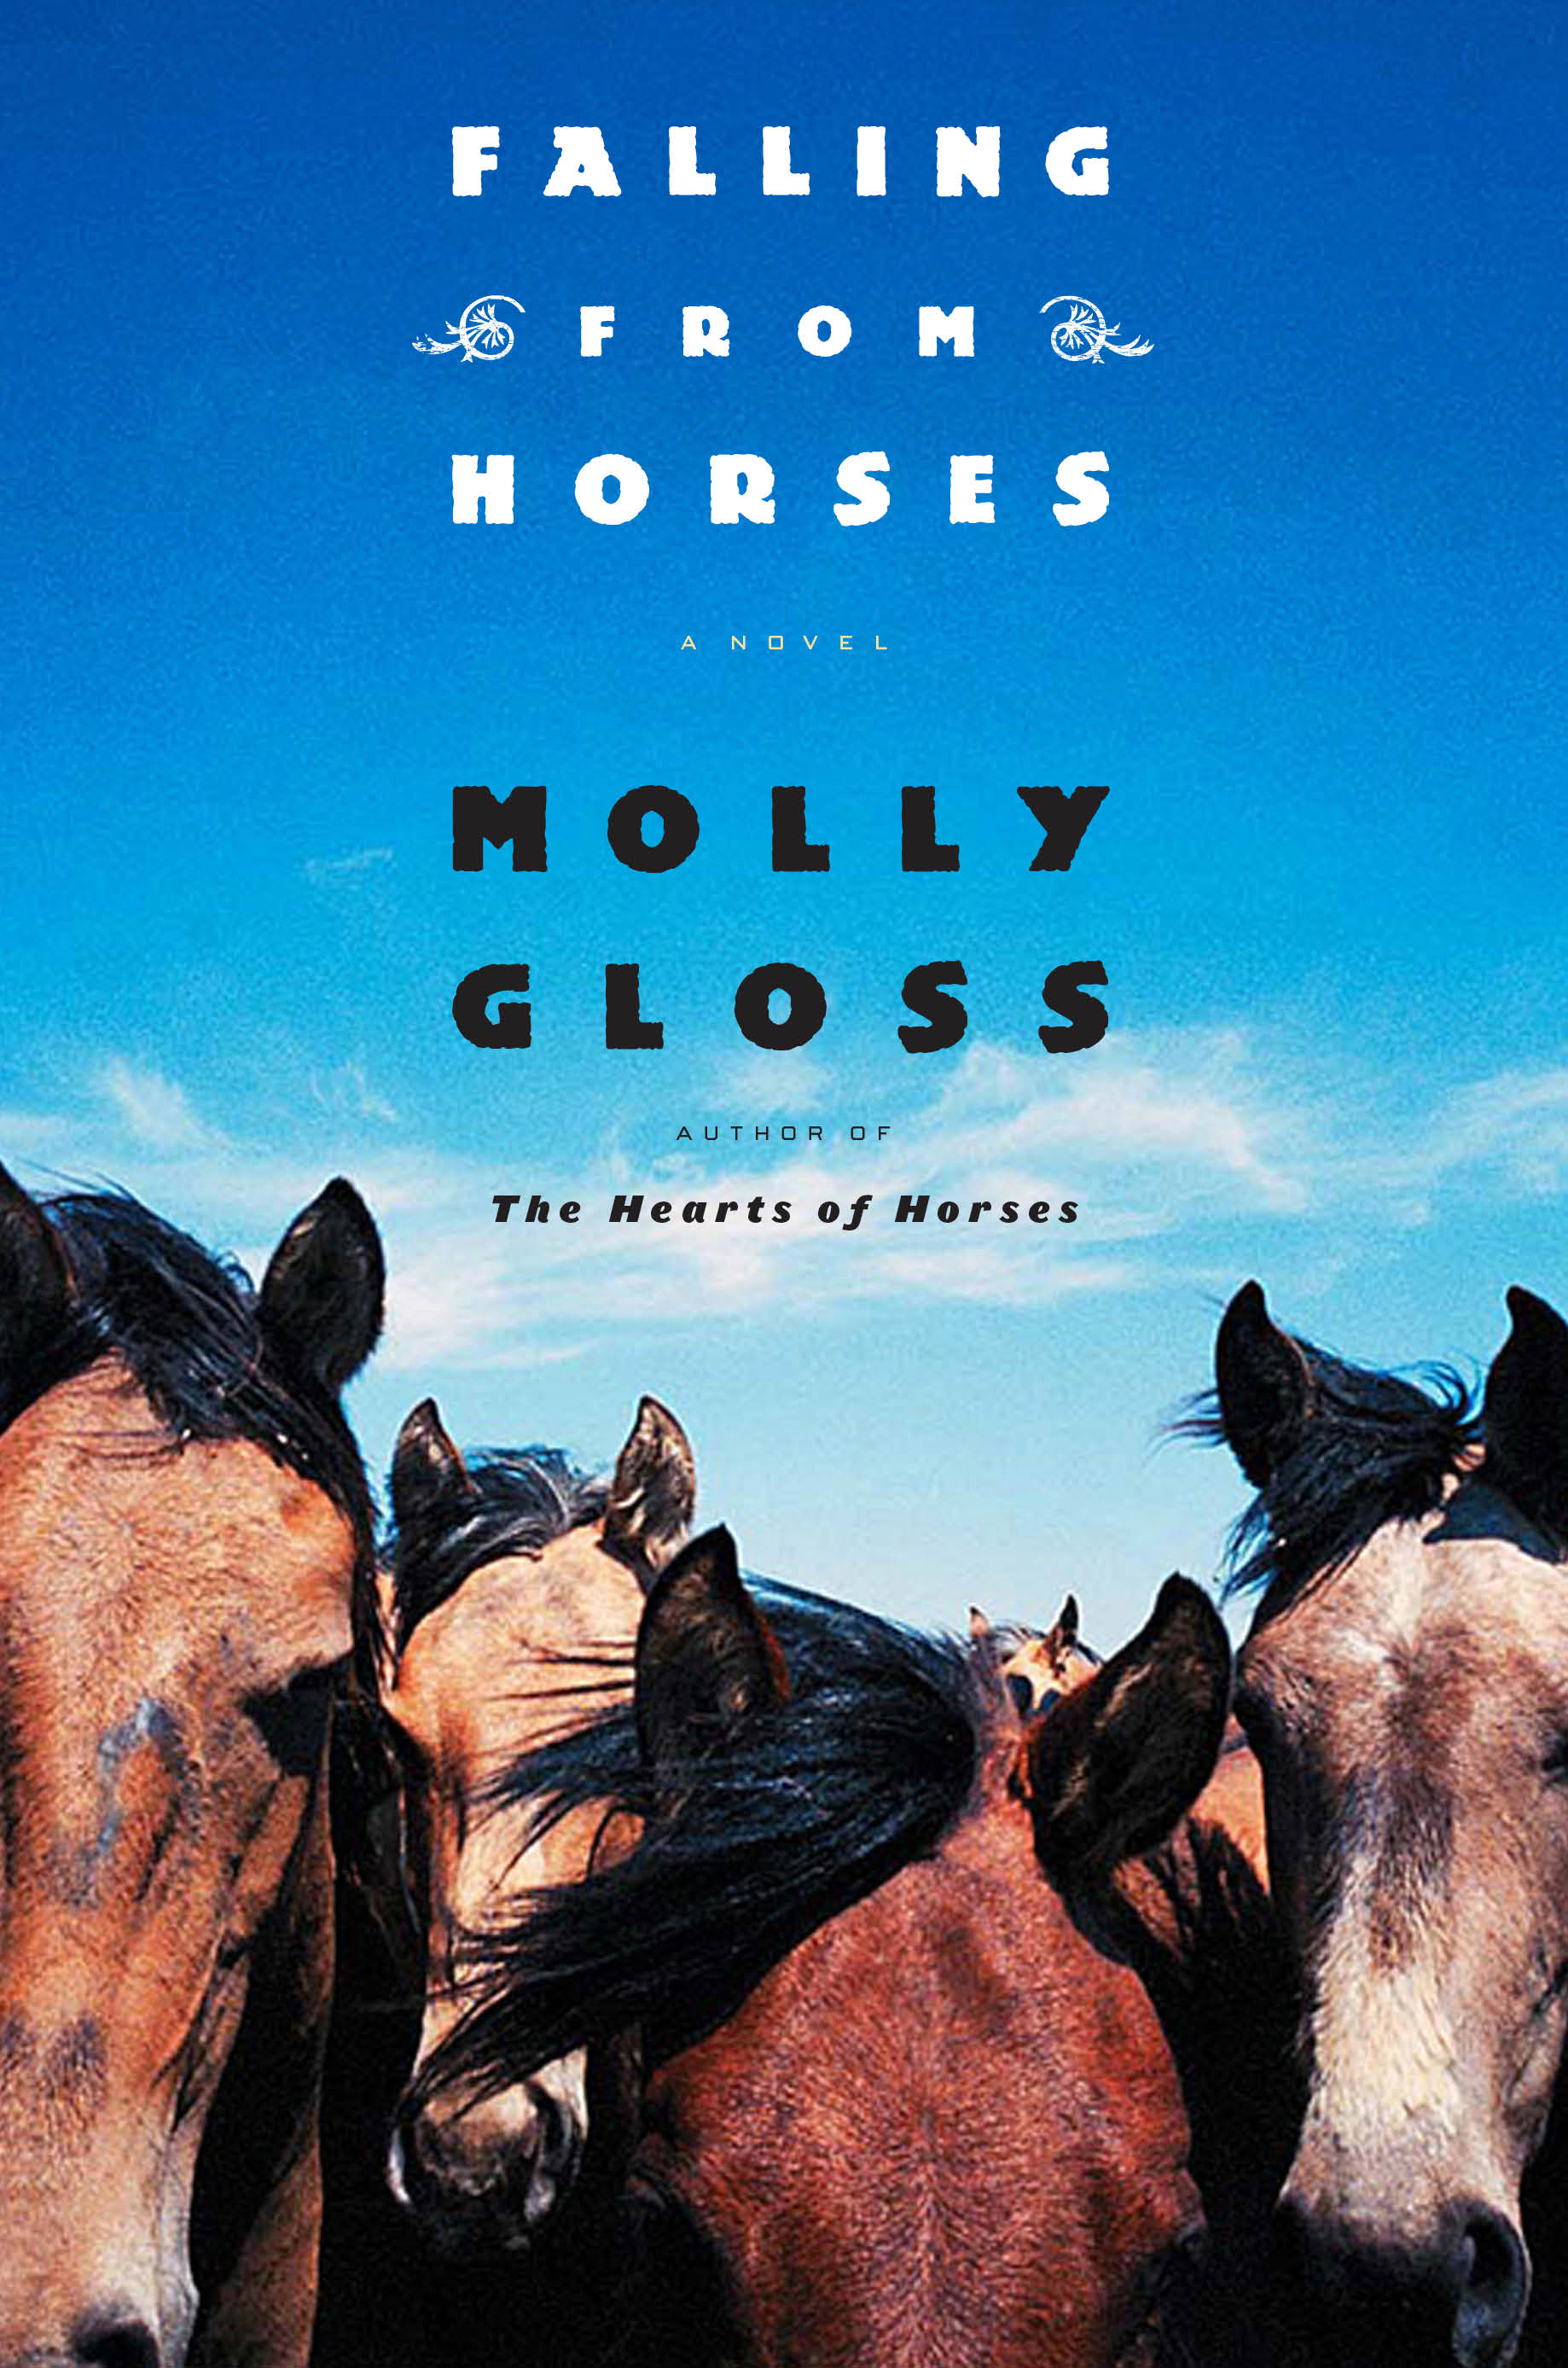 "In 1938, nineteen-year-old ranch hand Bud Frazer sets out for Hollywood to find work as a stunt rider, and Lily Shaw, a young woman from Seattle, has her sights set on becoming a screenwriter. The two strike up an unlikely kinship that will carry them through a life-changing year in the movie business. ""Molly Gloss is always exploring the dangerous place where reality and imagination combine to form the American West, and never more than in this book, plunging into the heart of the dream machine."" —Kim Stanley Robinson"